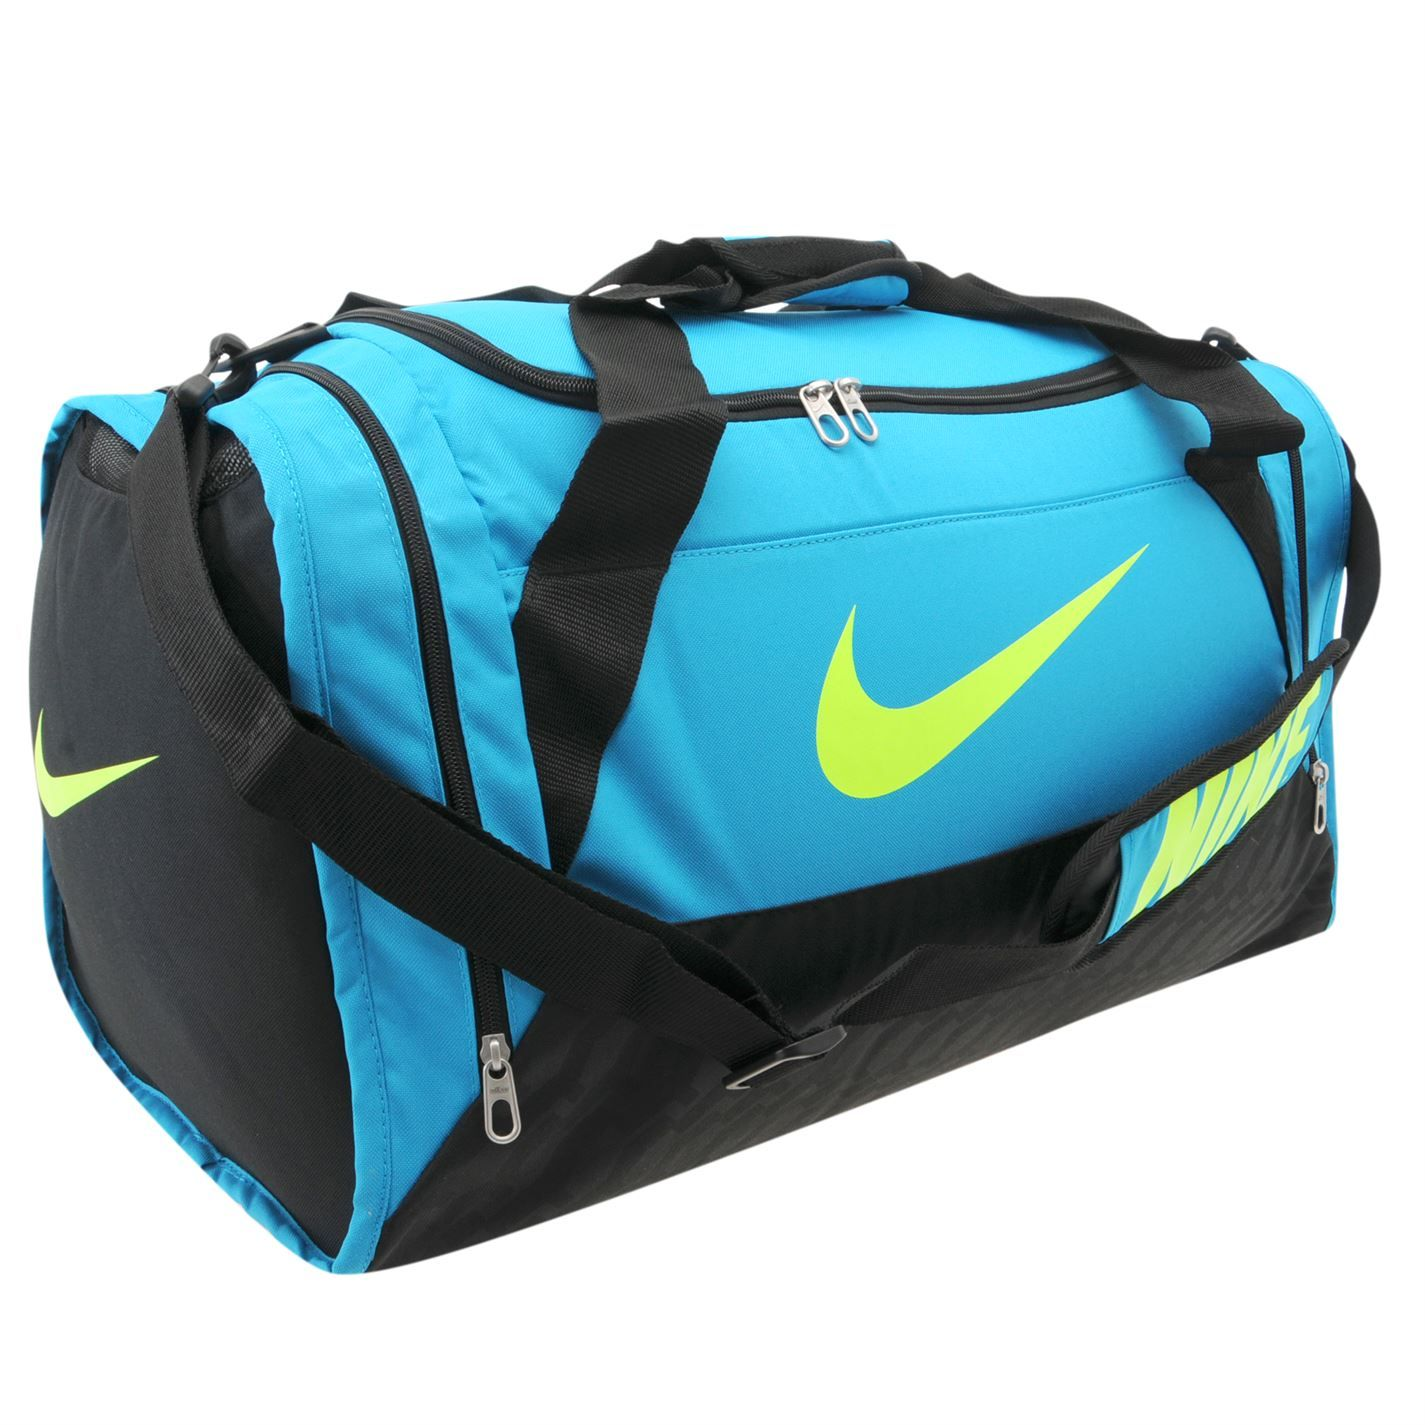 17c8b8c721 Nike Team Training Max Air Medium Duffel Bag Black